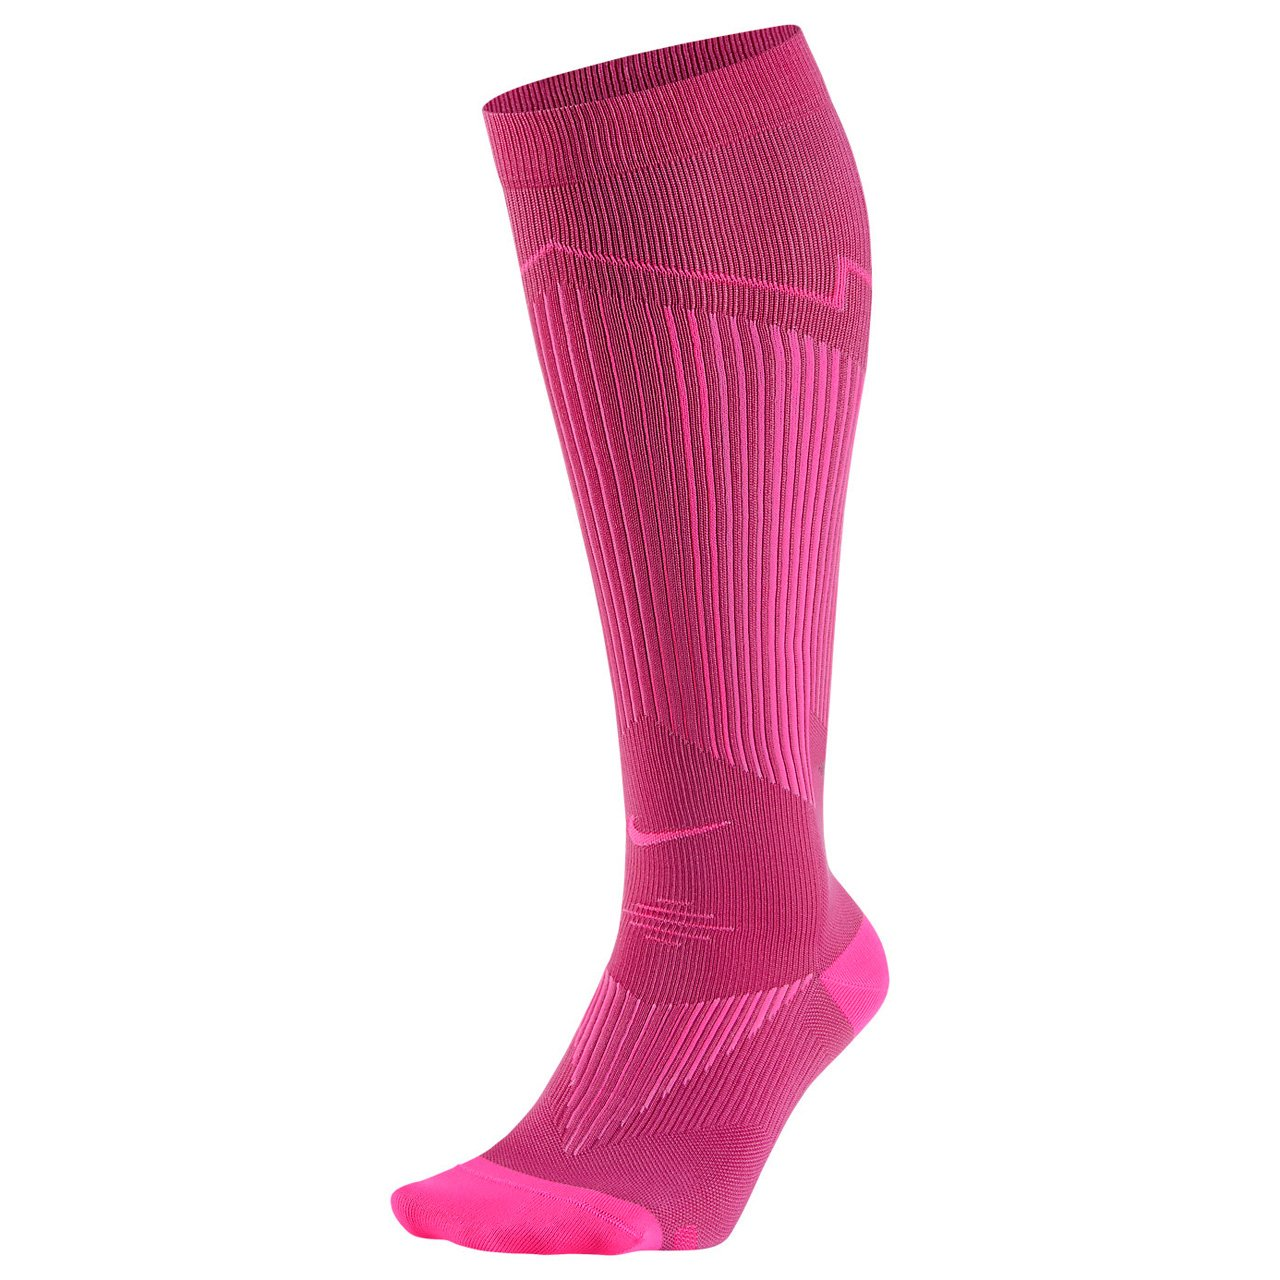 Nike Knee High Elite Run Hyp Comp Varios colores multicolor Talla:14-16: Amazon.es: Deportes y aire libre